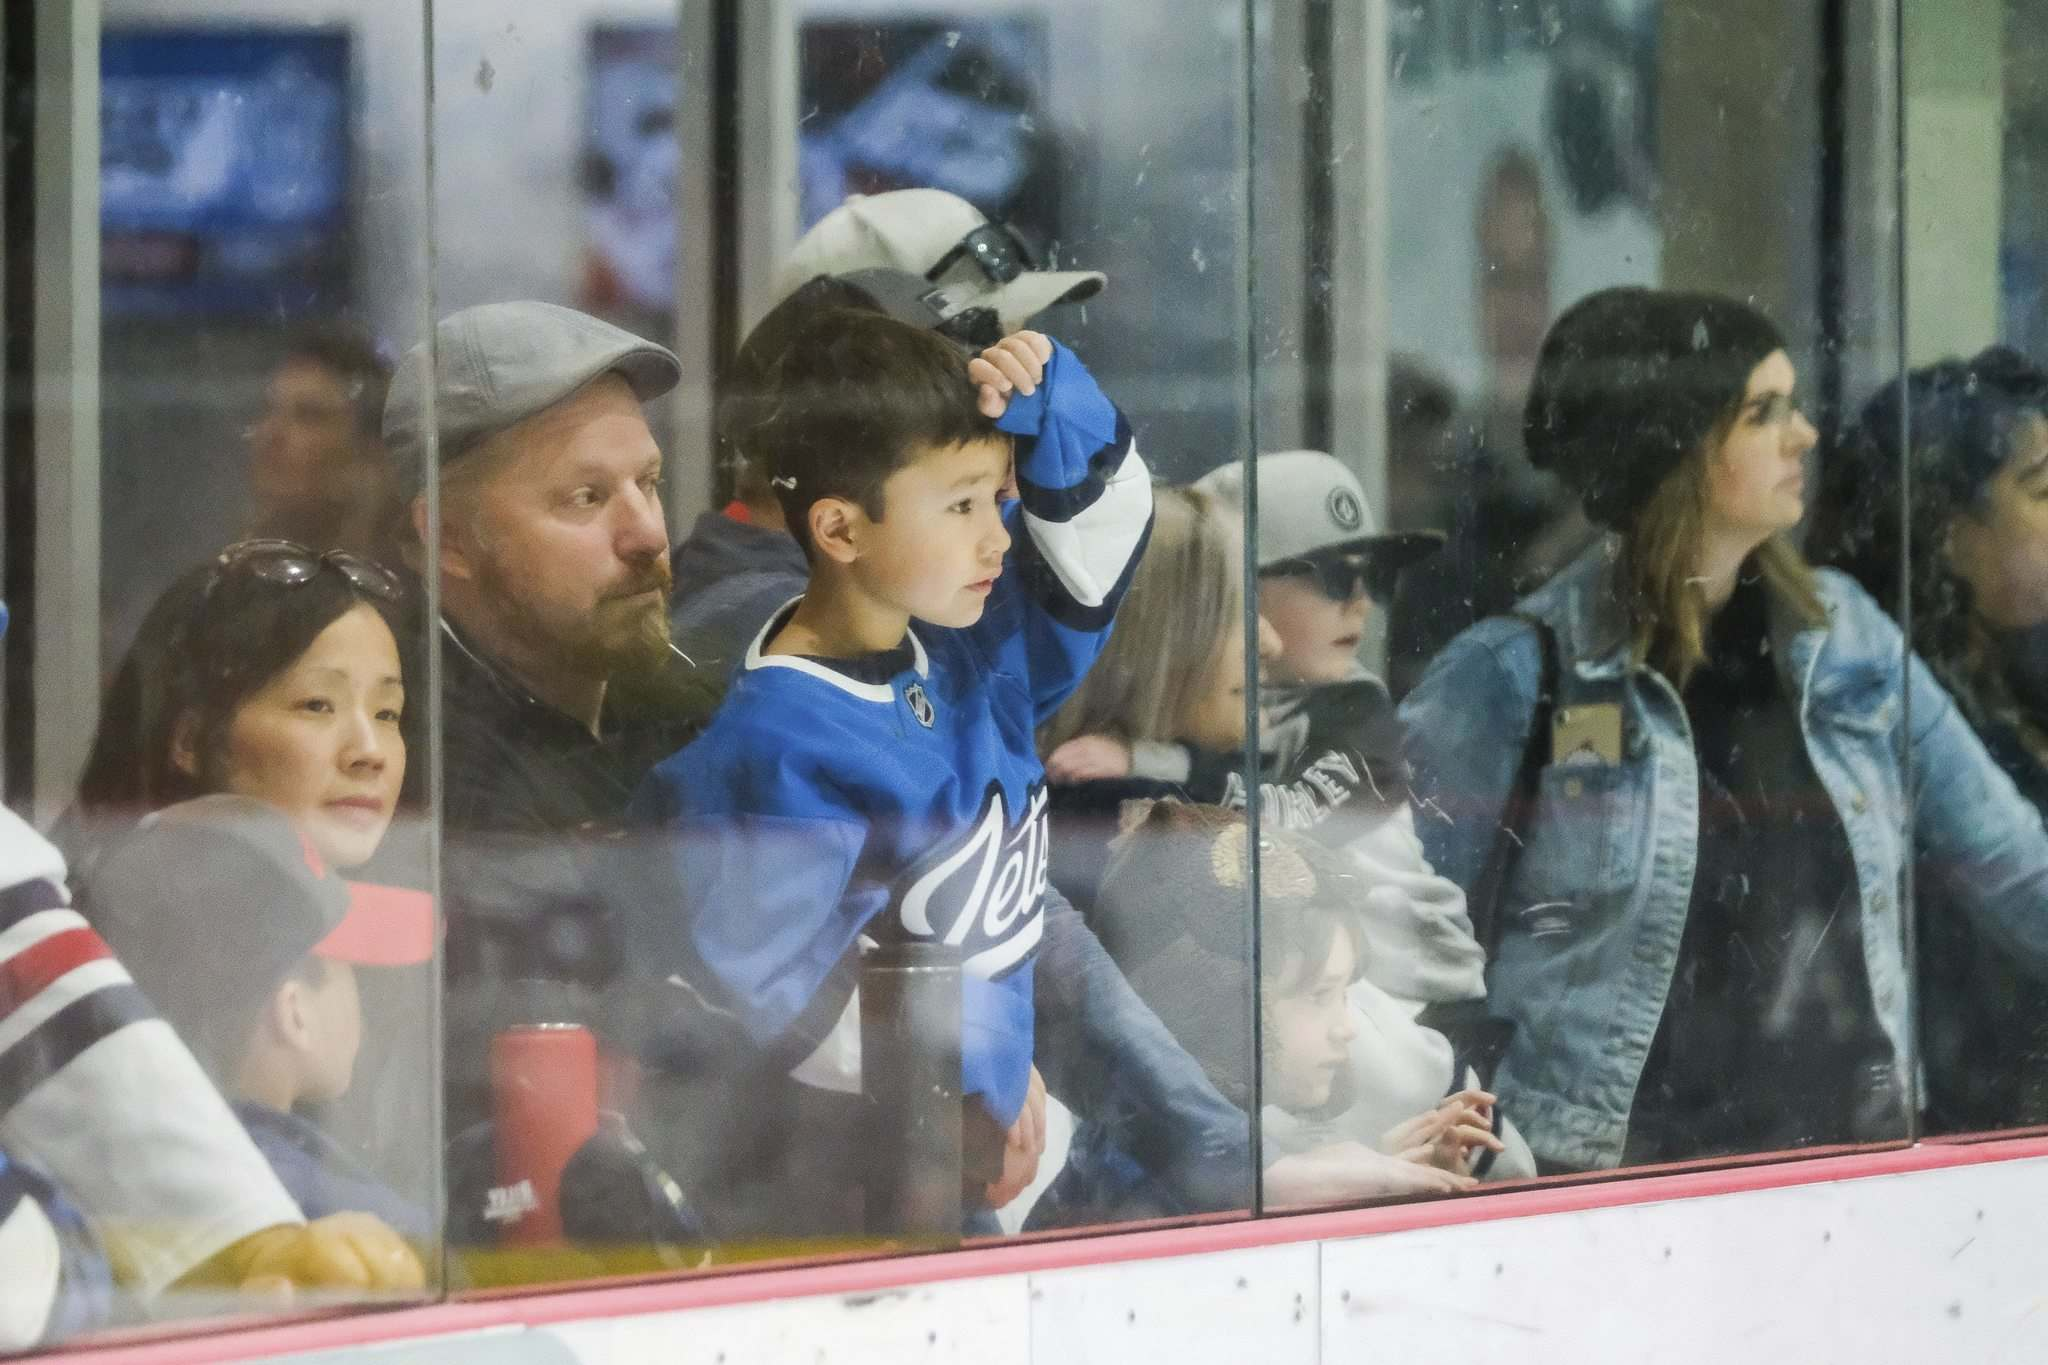 DANIEL CRUMP / WINNIPEG FREE PRESS</p><p>Fans watch a Winnipeg Jets practice with great interest.</p>